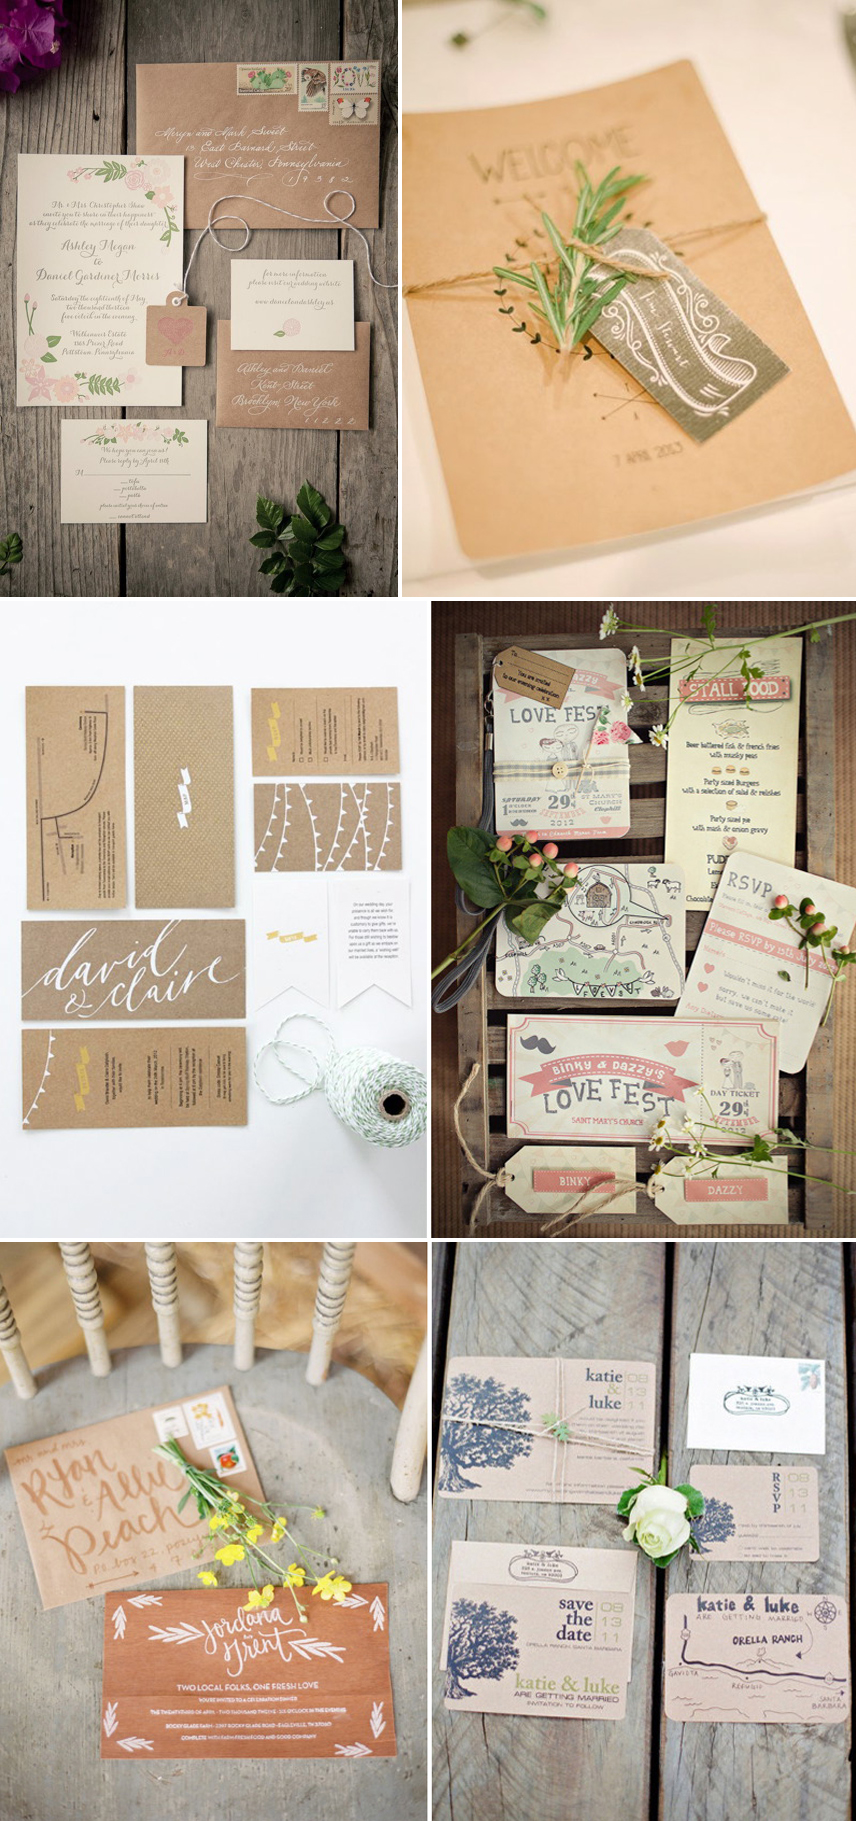 Coco Wedding Venues - Rustic Romance Wedding Style - Stationary.